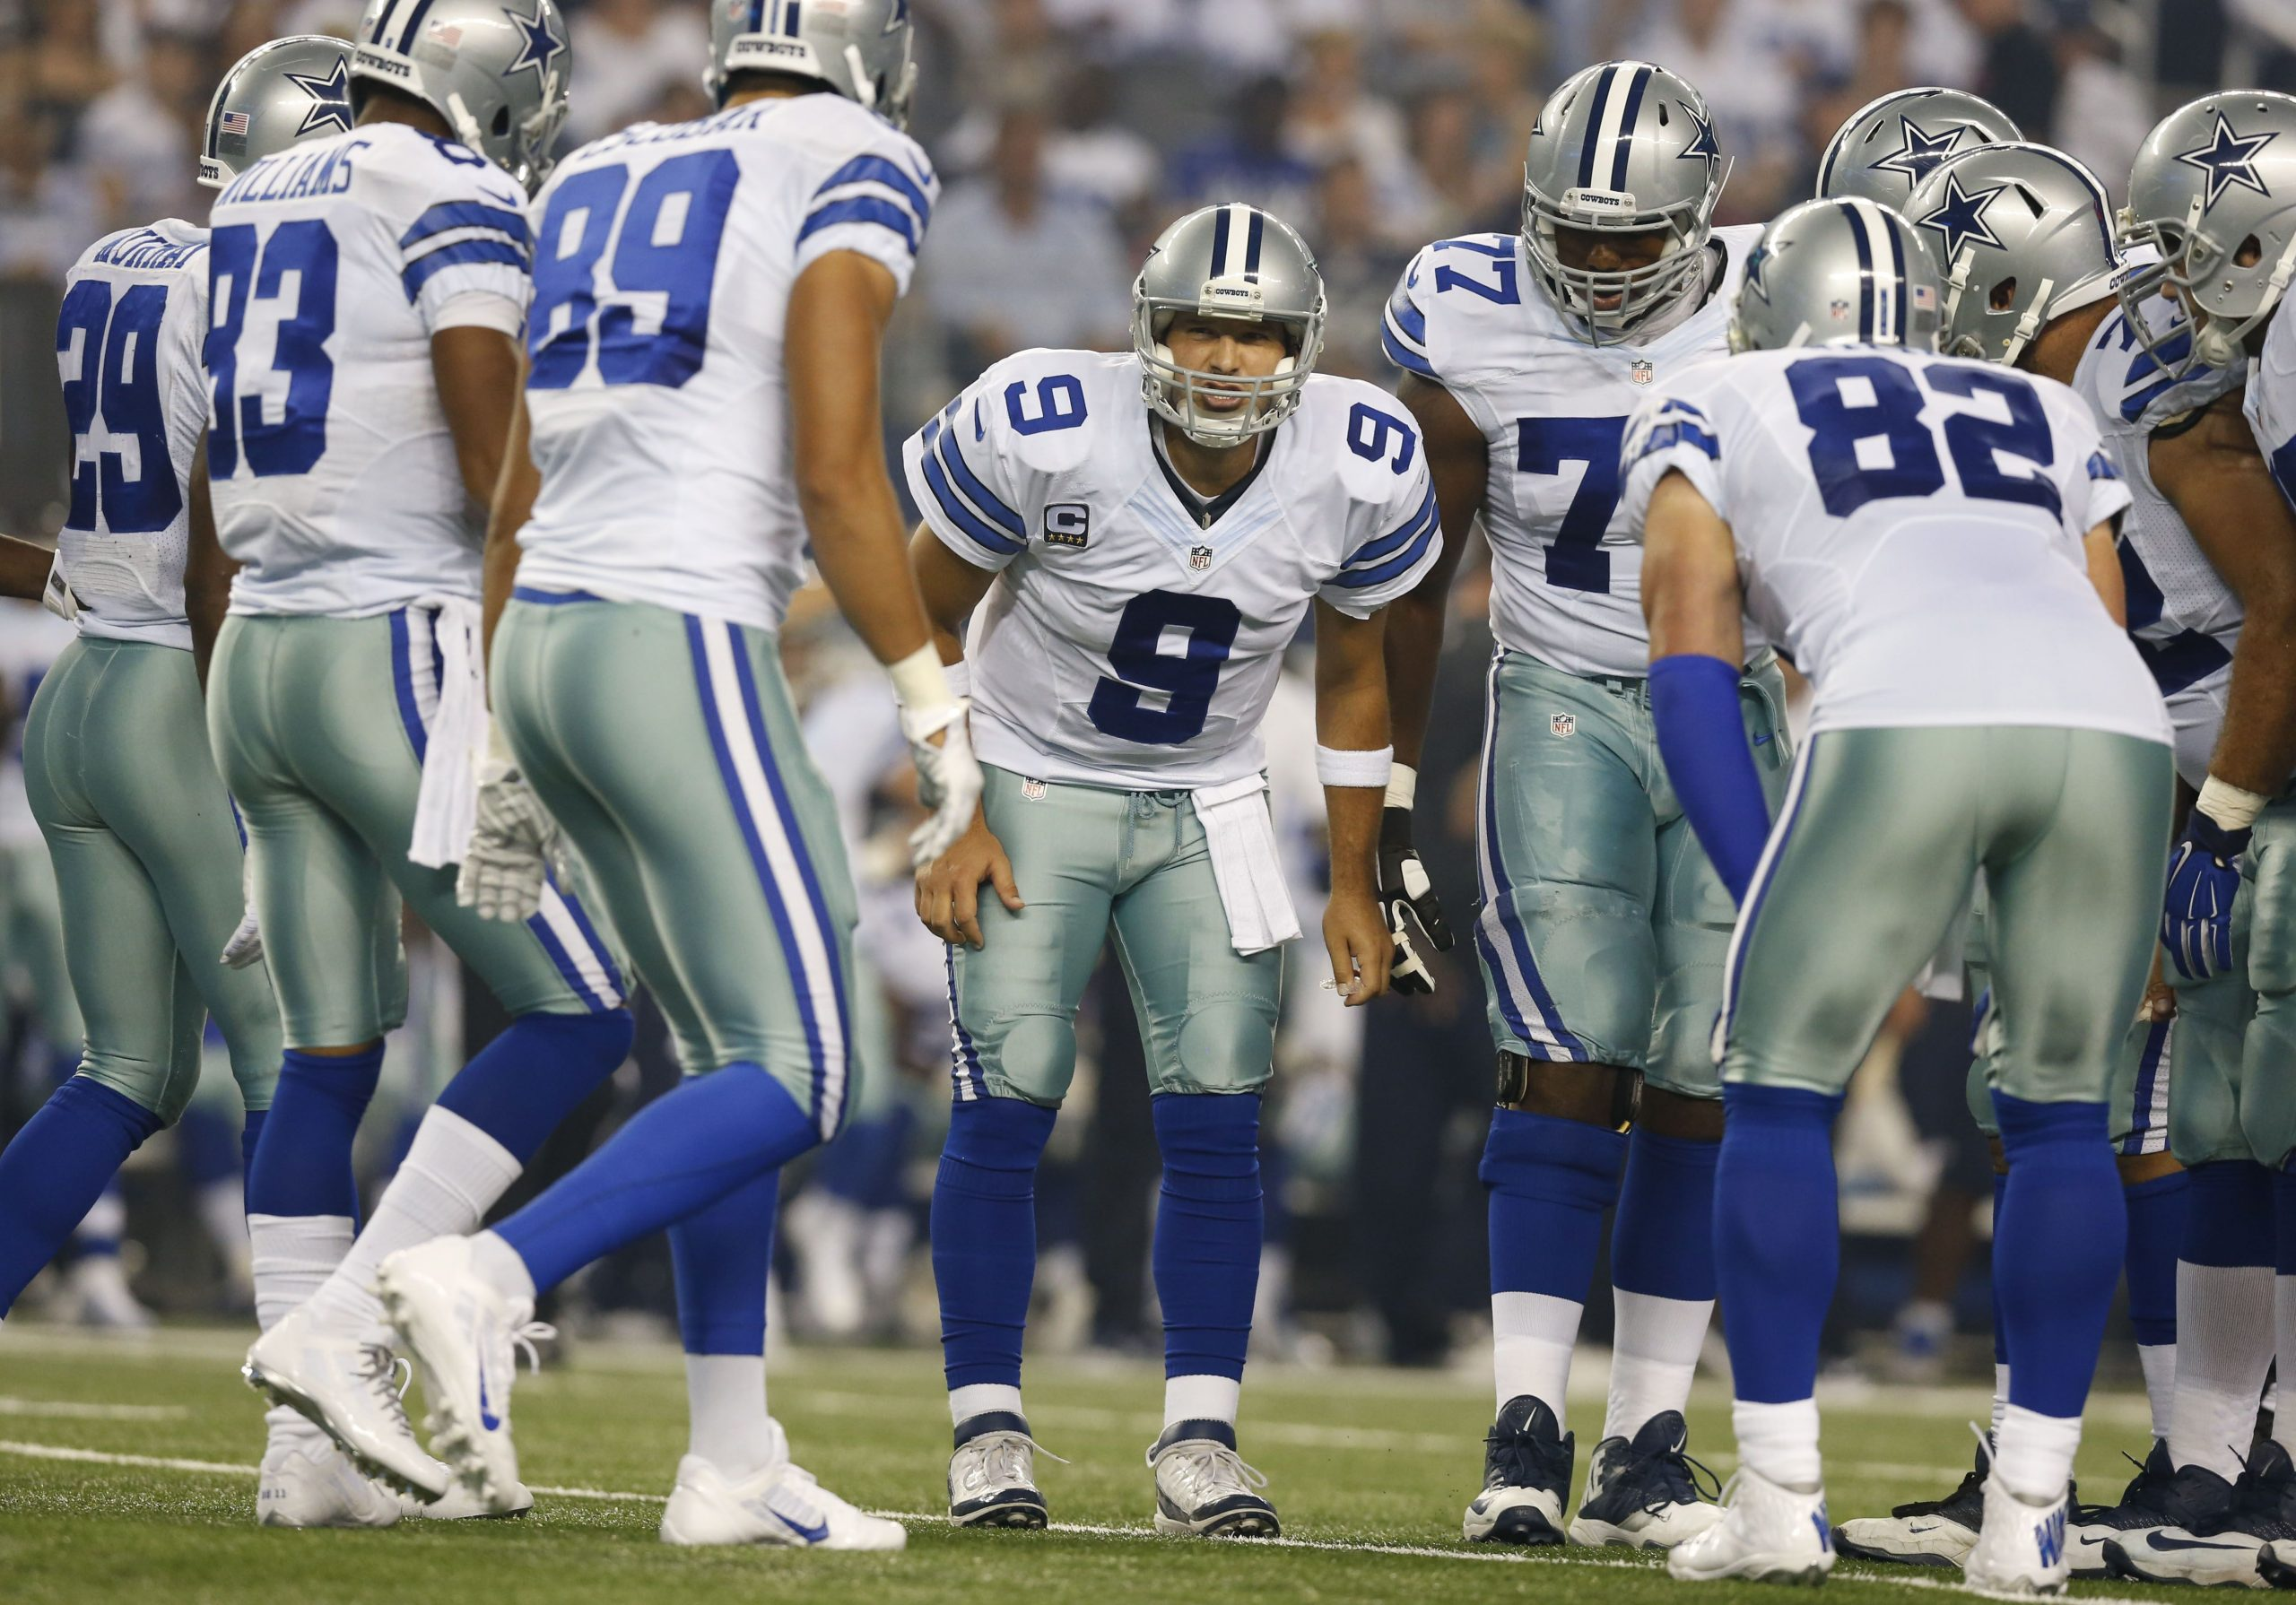 Dallas Cowboys Roster Wallpaper Tony Romo and his Teammates 31 Dallas Cowboys Wallpaper HD Wallpapers Wallpapers Download